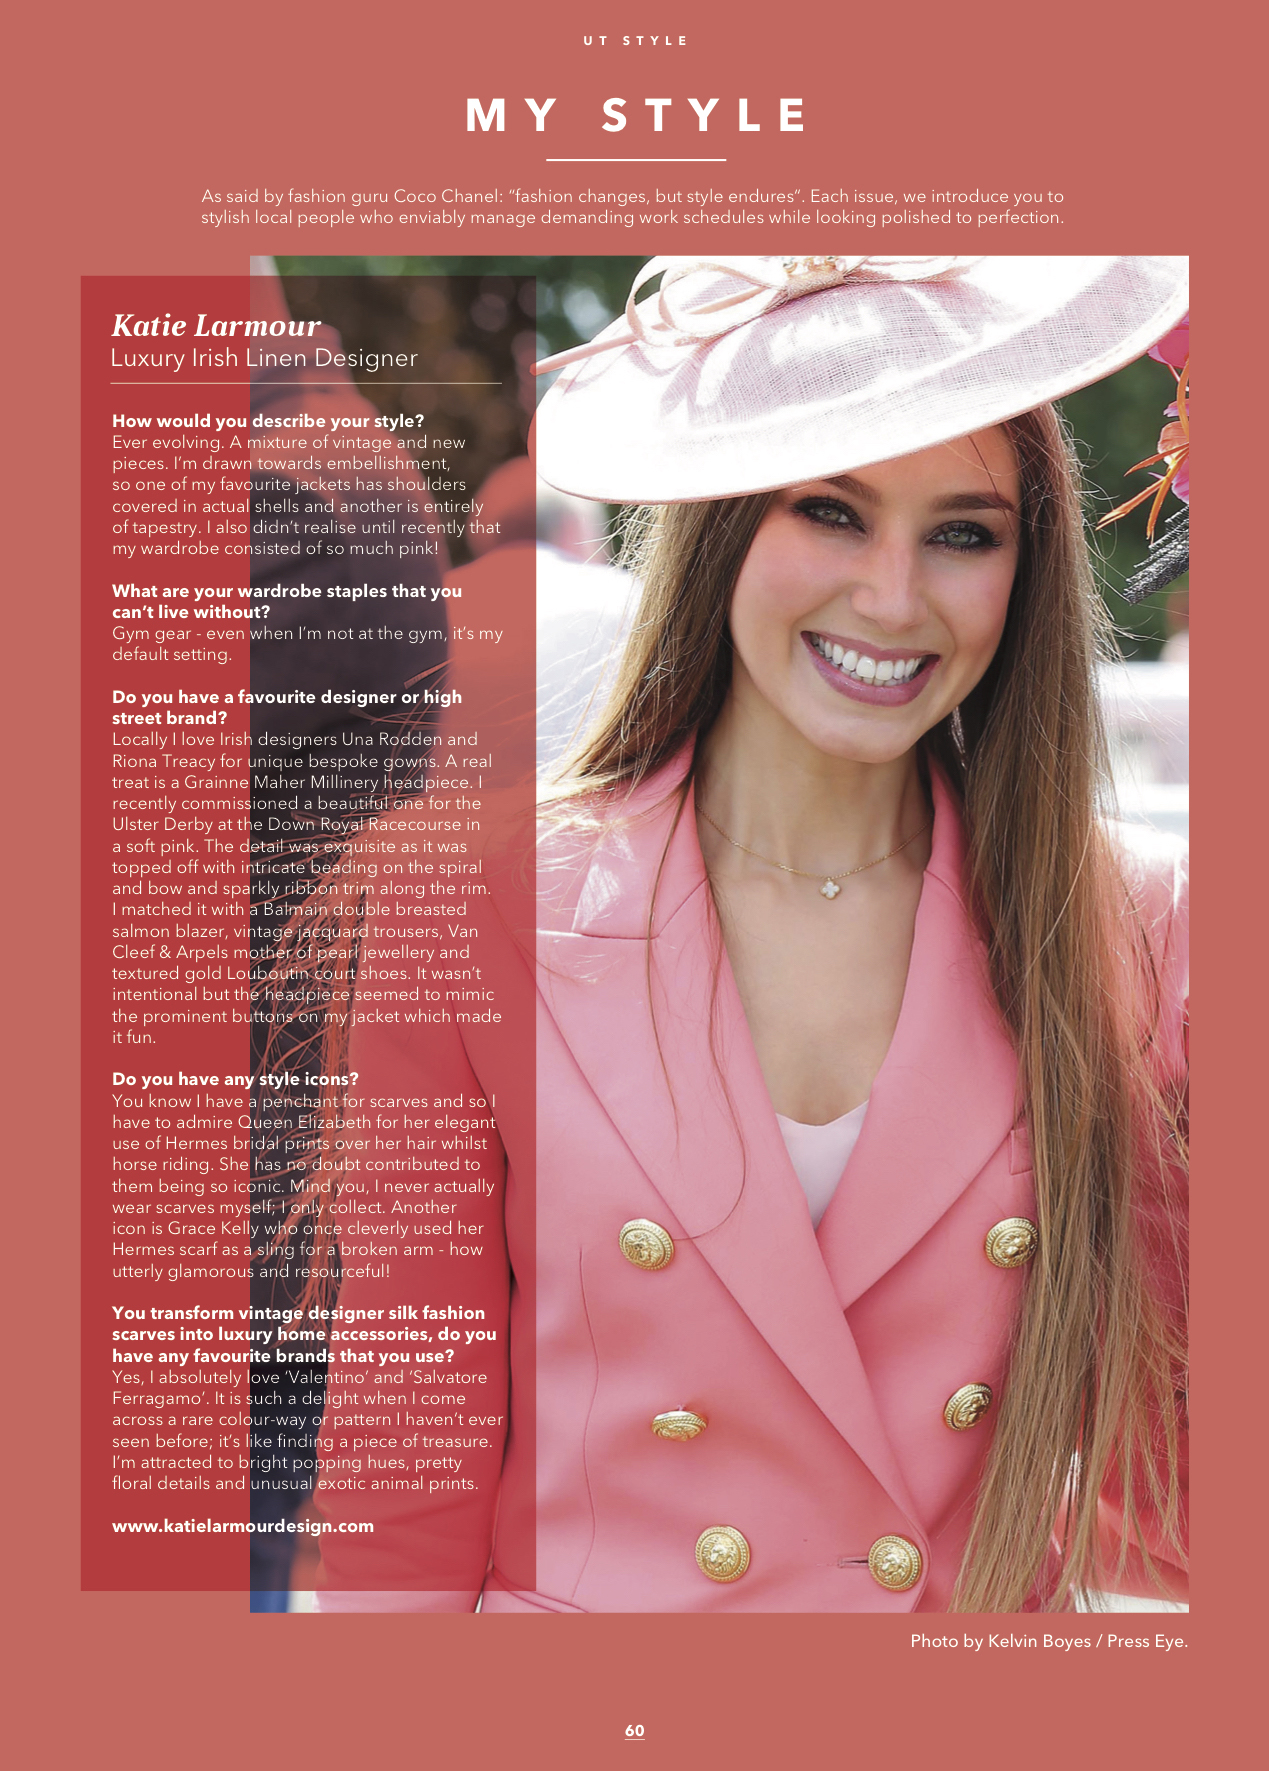 Ulster Tatler Magazine Feburary 2018 Issue Katie Larmour Design Fashion Feature 'My Style' .jpg